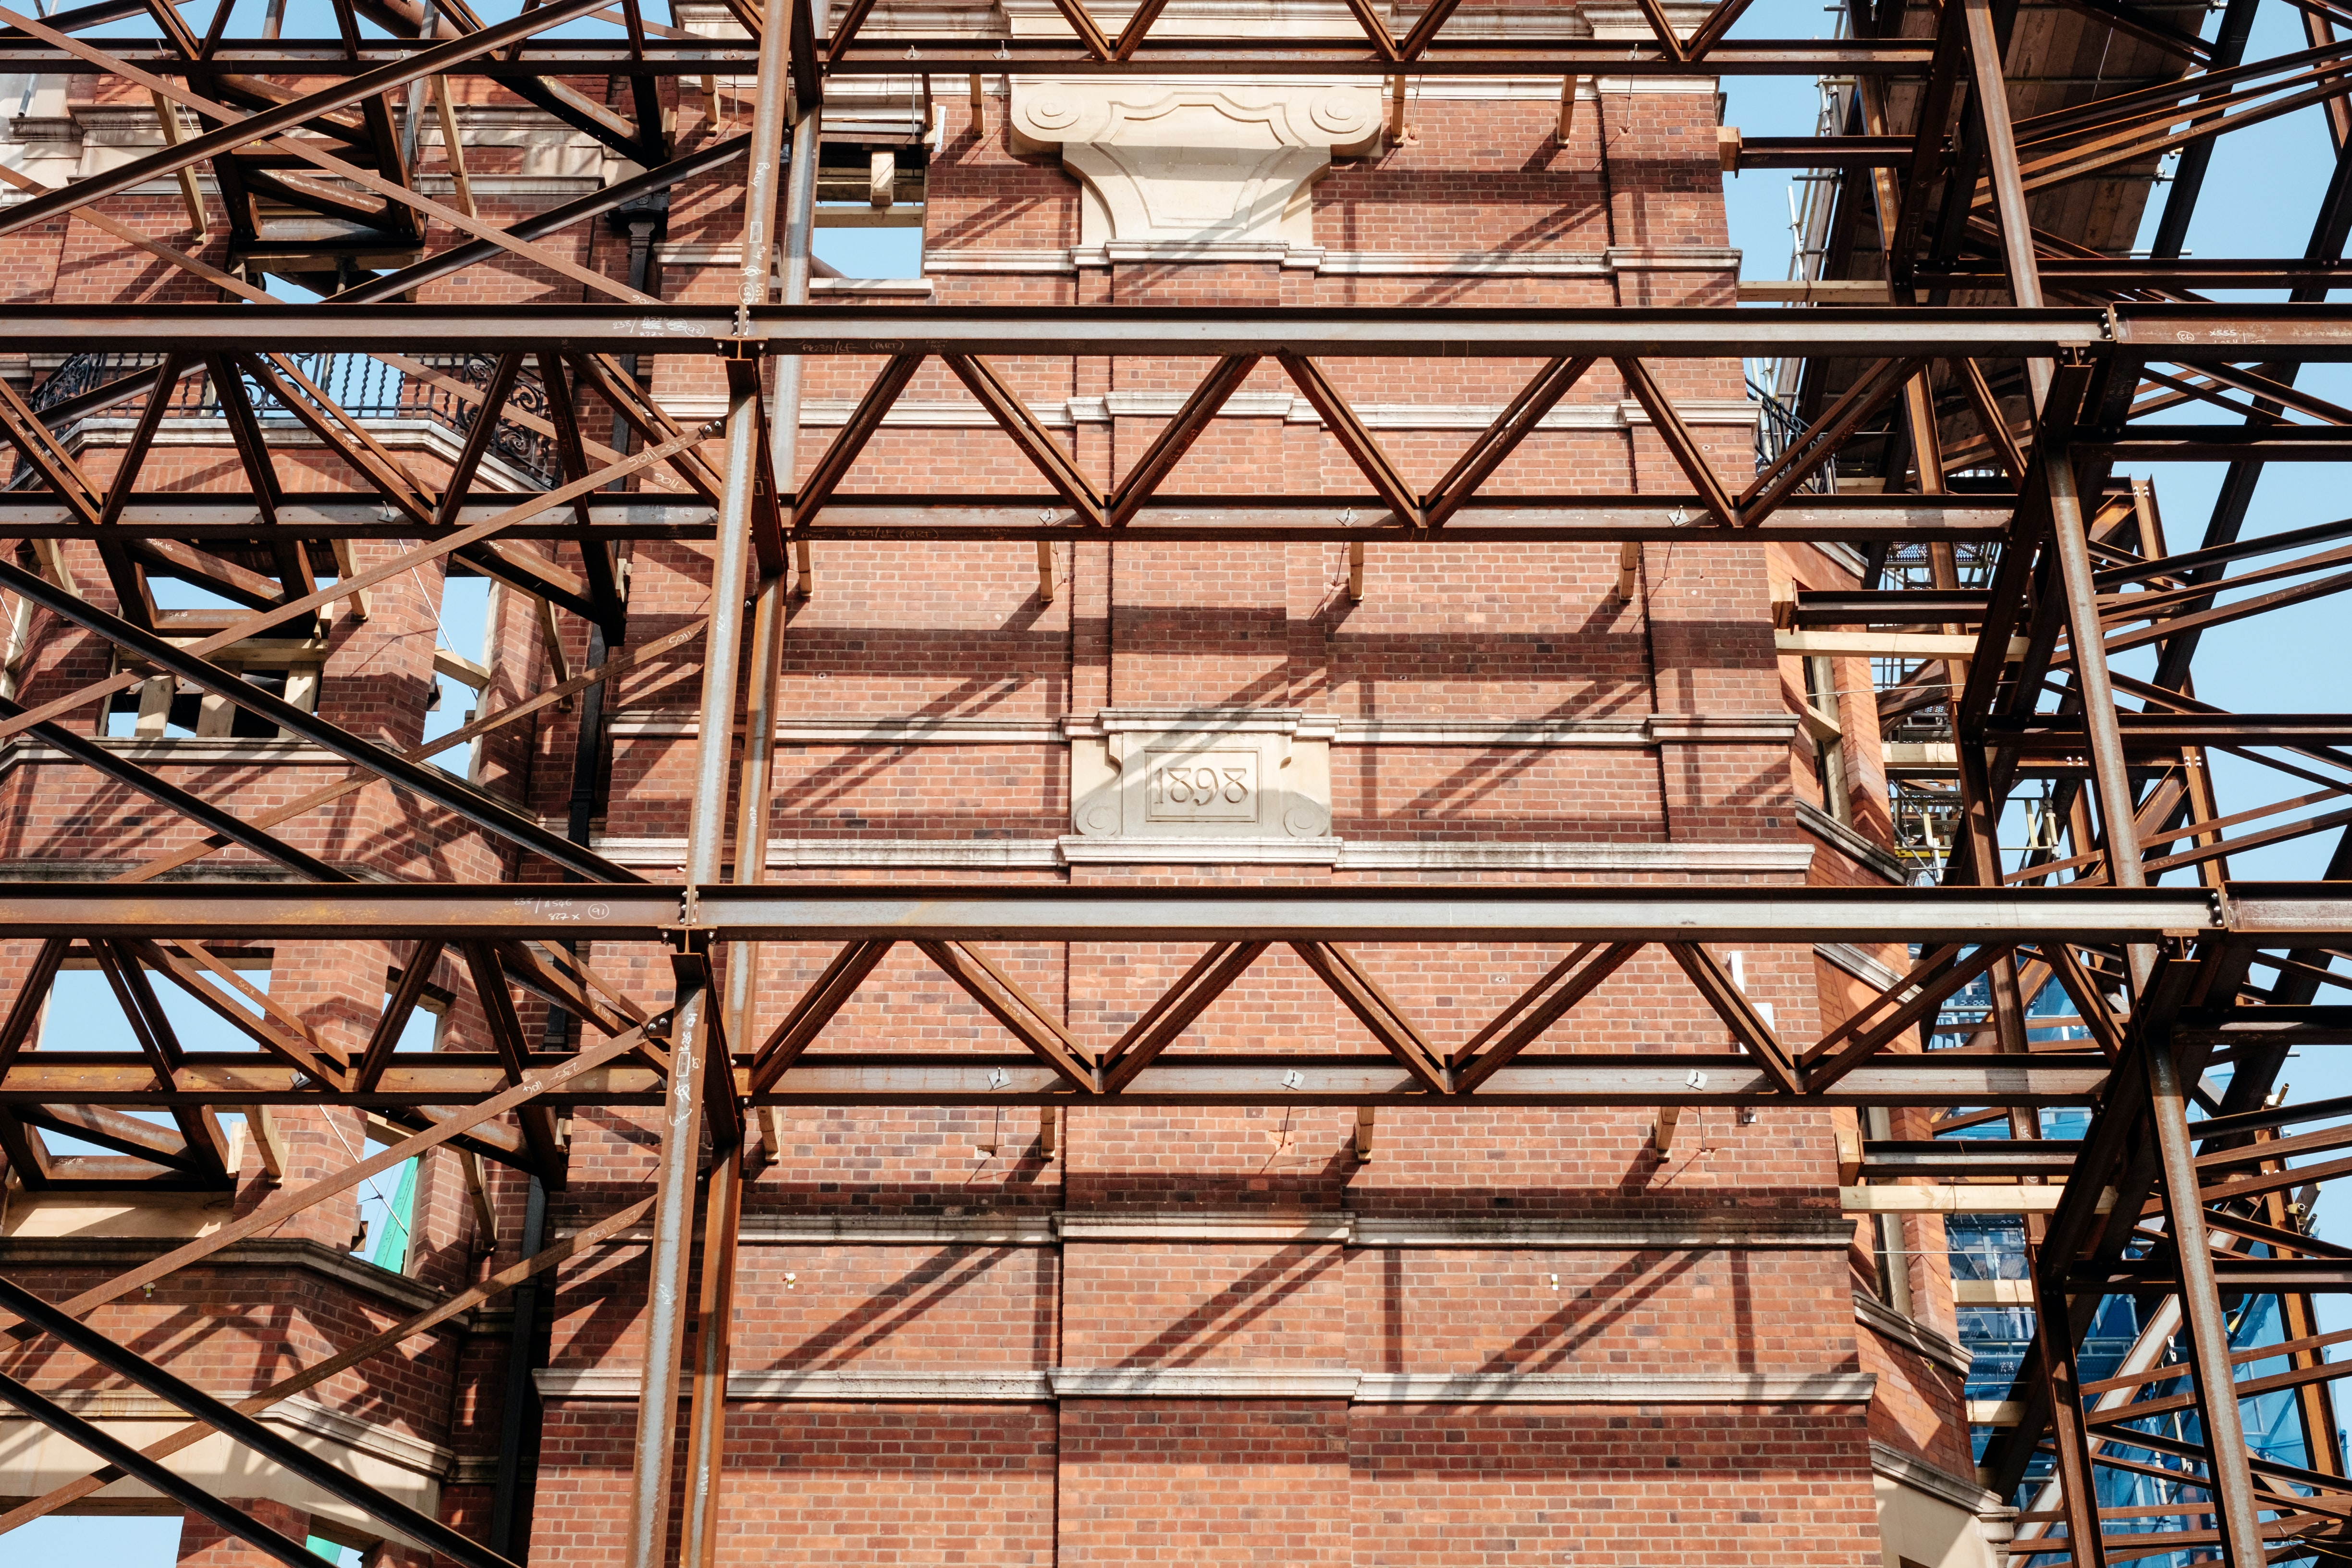 gray and red scaffolding hnear building